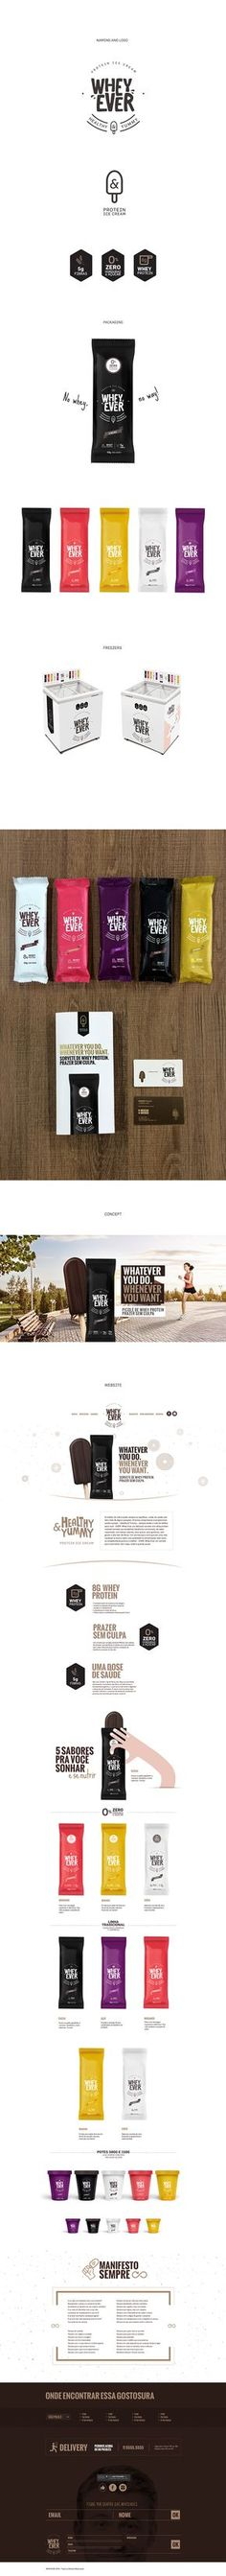 WHEY EVER PROTEIN ICE CREAM on Behance- interesting lettering and logo